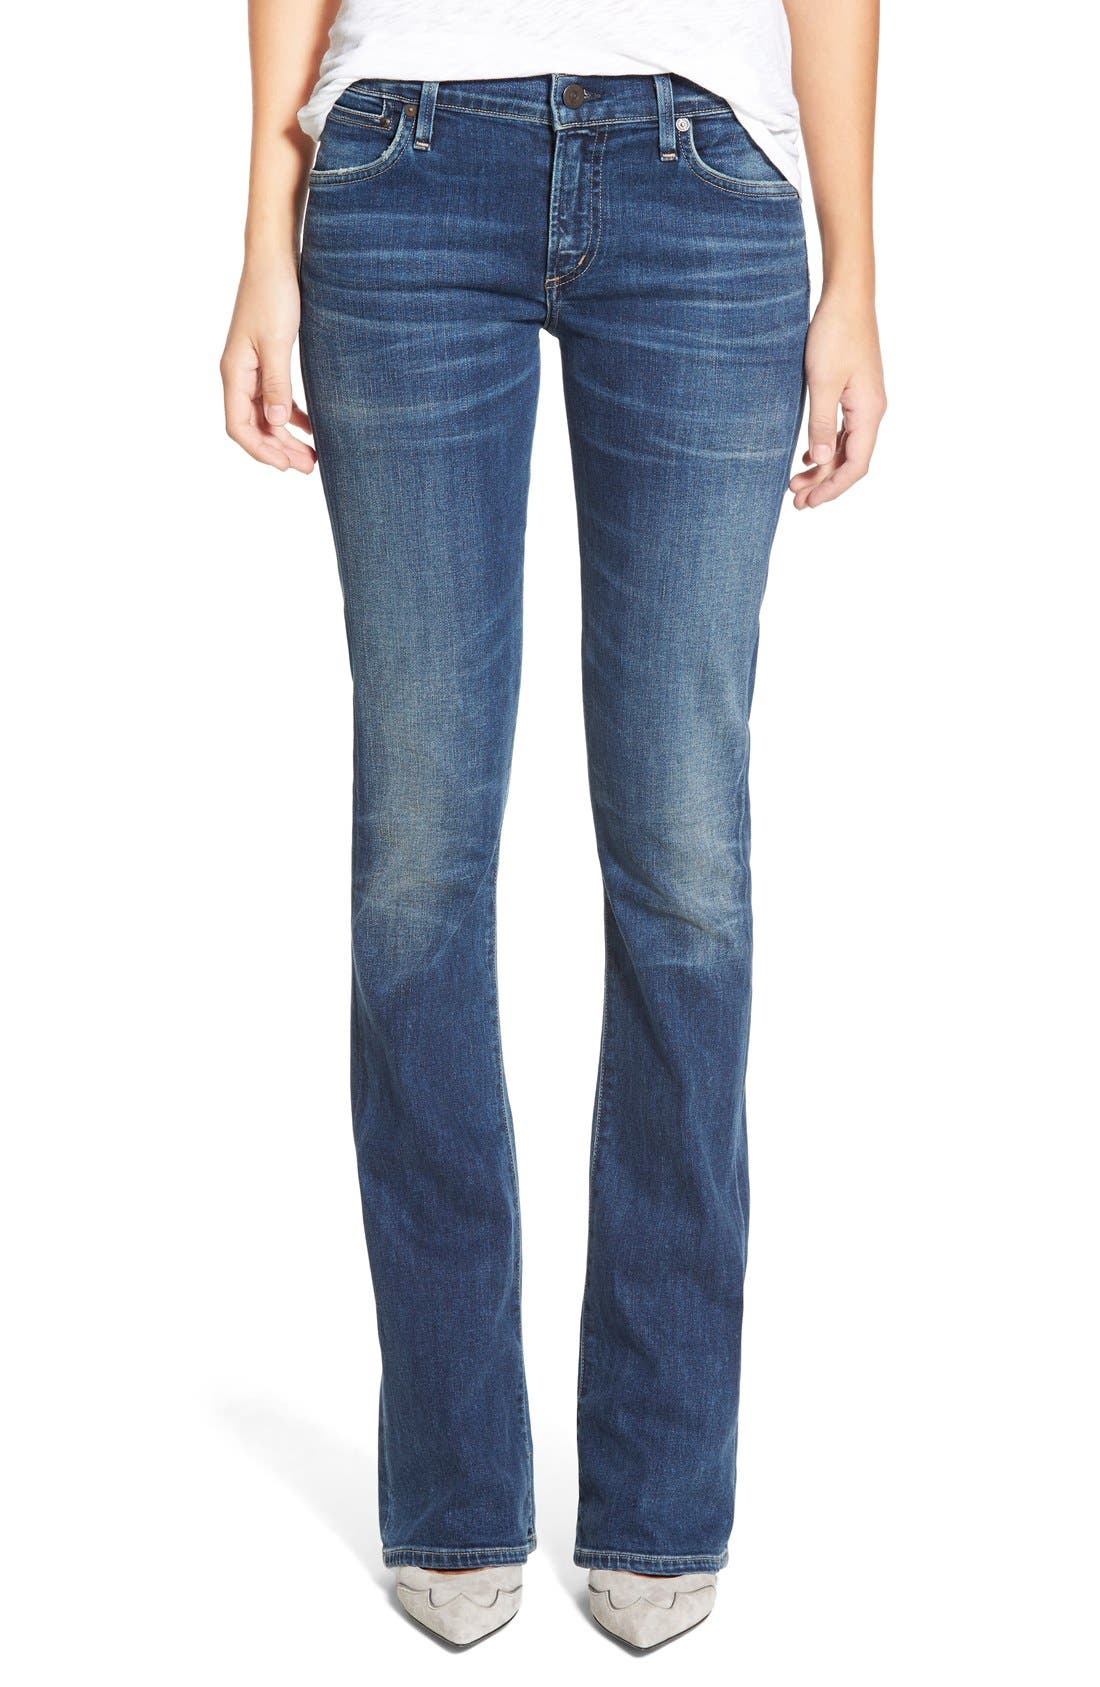 Alternate Image 1 Selected - Citizens of Humanity'Emannuelle' Slim BootcutJeans (Modern Love)